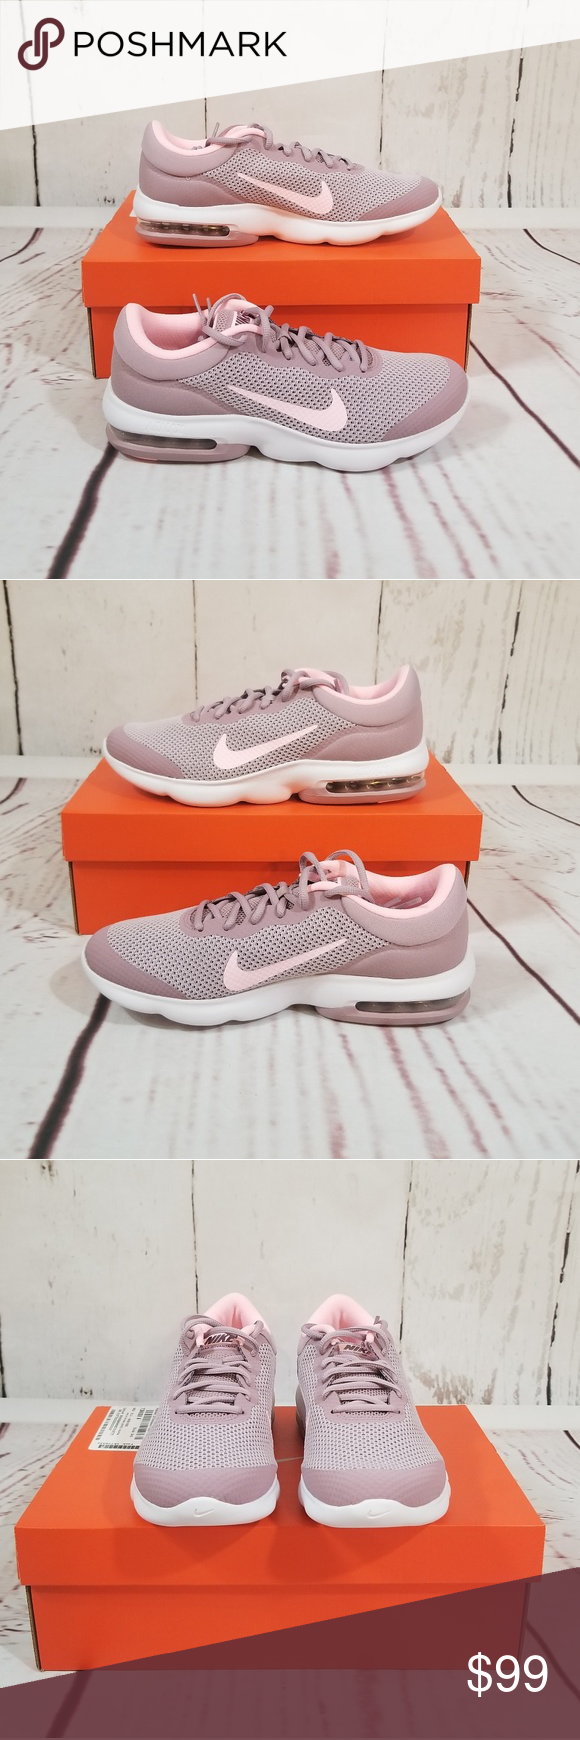 huge selection of d8d92 aae6b NIKE Air Max Advantage Women s Pink Trainers New in box Nike Air Max  Advantage woman s trainers. Size  10 Color  Elemental Rose Arctic Punch 🌺  Remember to ...